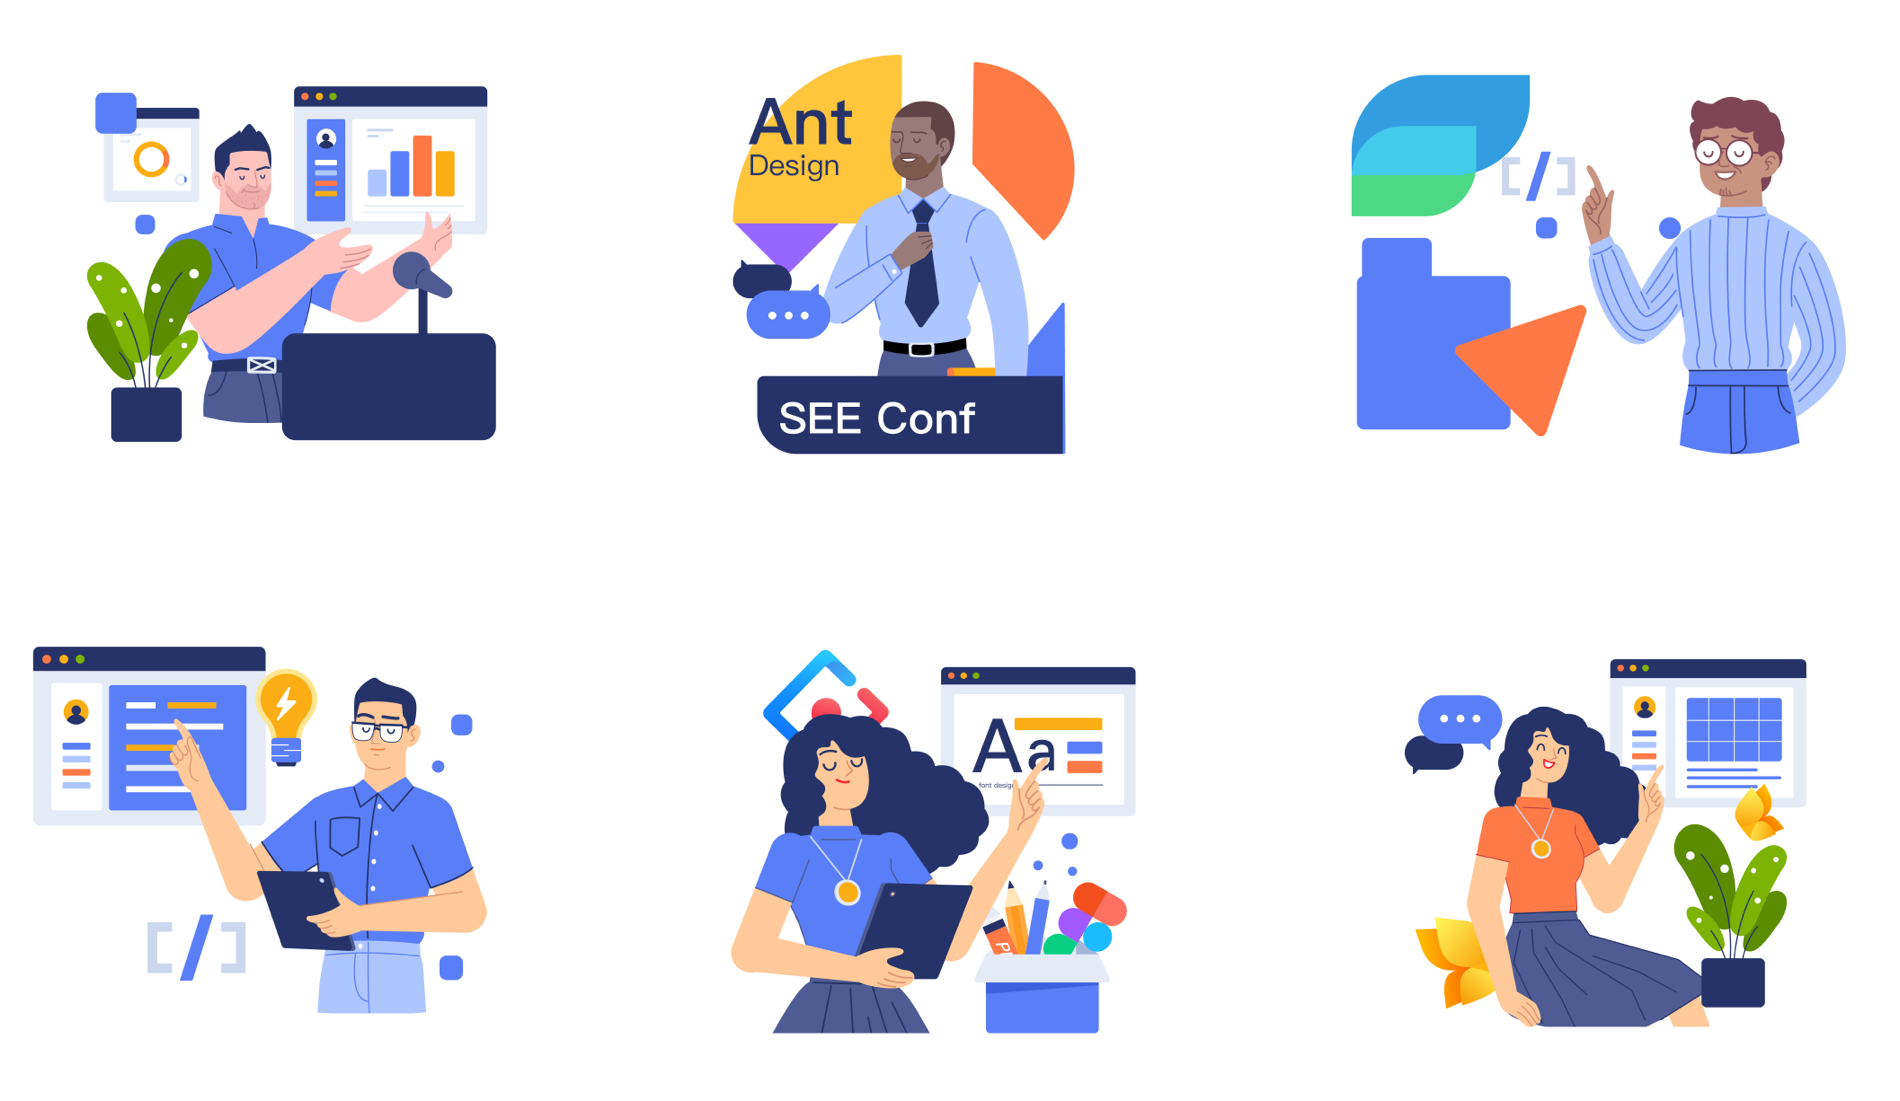 Hitu Free Illustration Components - HiTu aims to modularize layout, color, shapes, and a series of design guidelines to help designers fulfill illustration requests gracefully and fast.